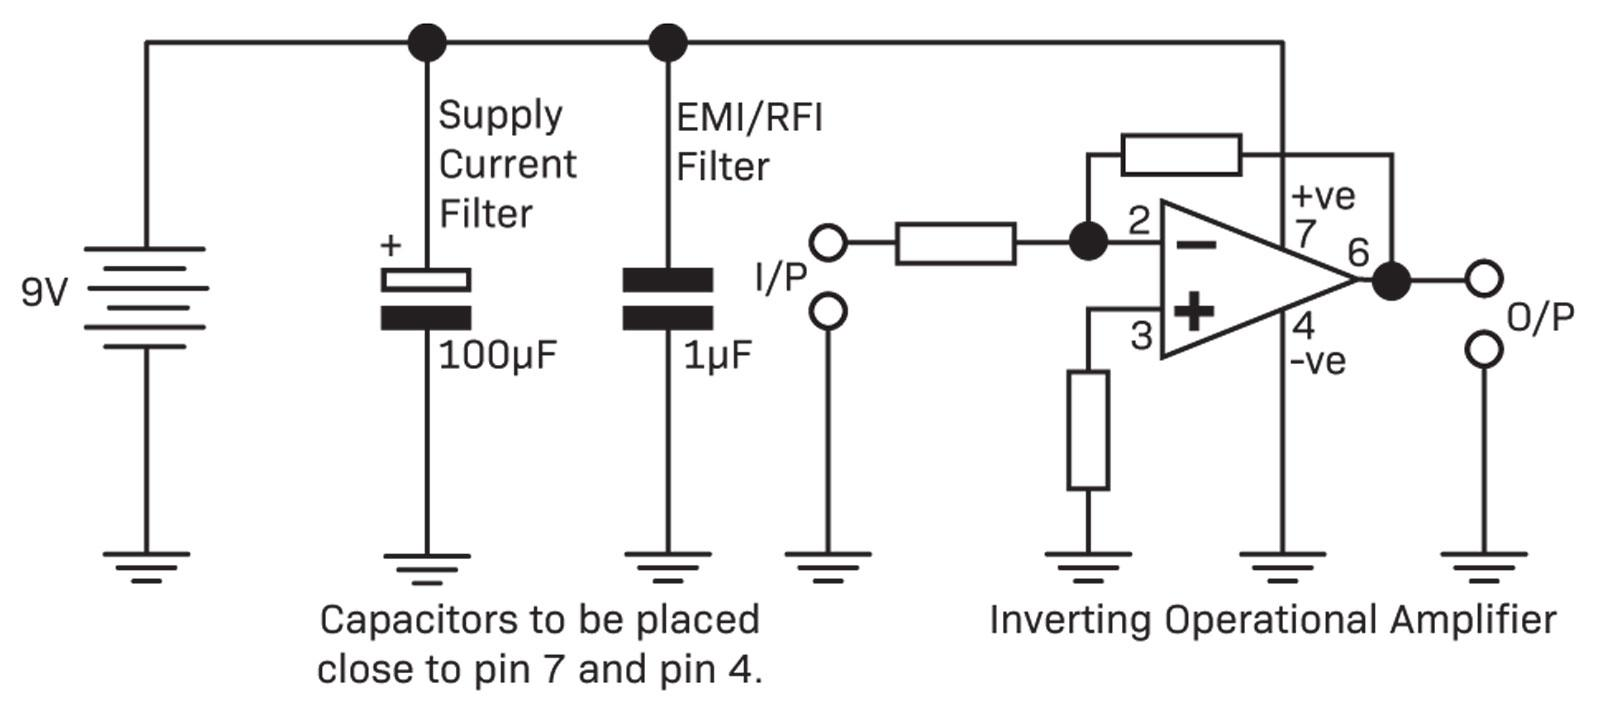 Operational Amplifiers Diyode Magazine Negative To Positive Voltage Supply With Lm741 Usually A Small Electrolytic Will Handle Fluctuating Power Draw Of The Device Itself And Smaller Value Capacitor Might Be Added Bypass Higher